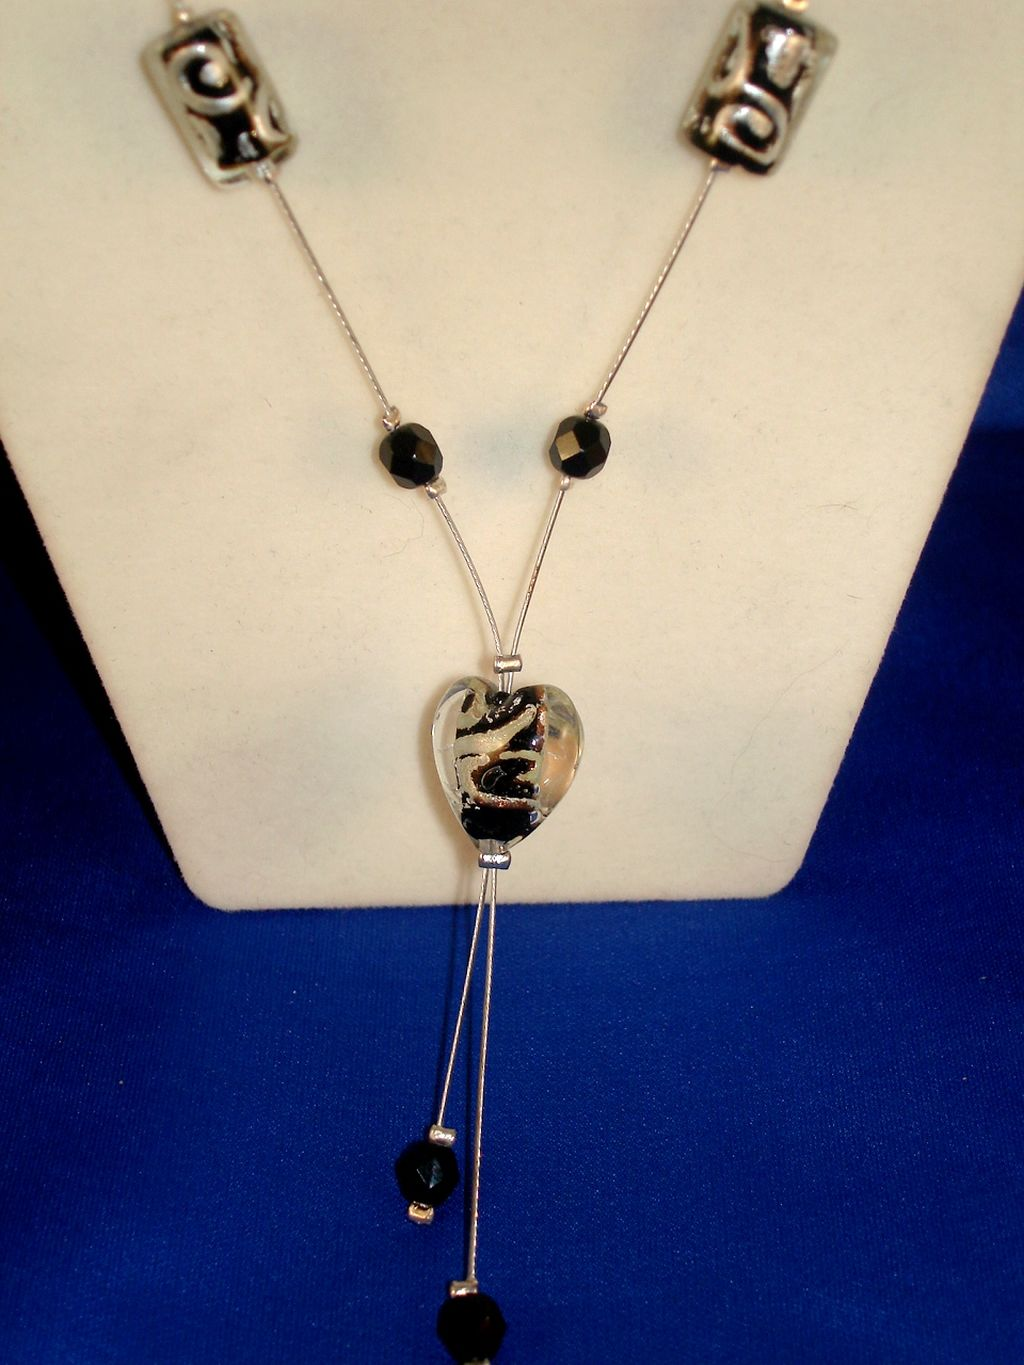 Black Heart Stained Glass Necklace, European Fashion Jewelry